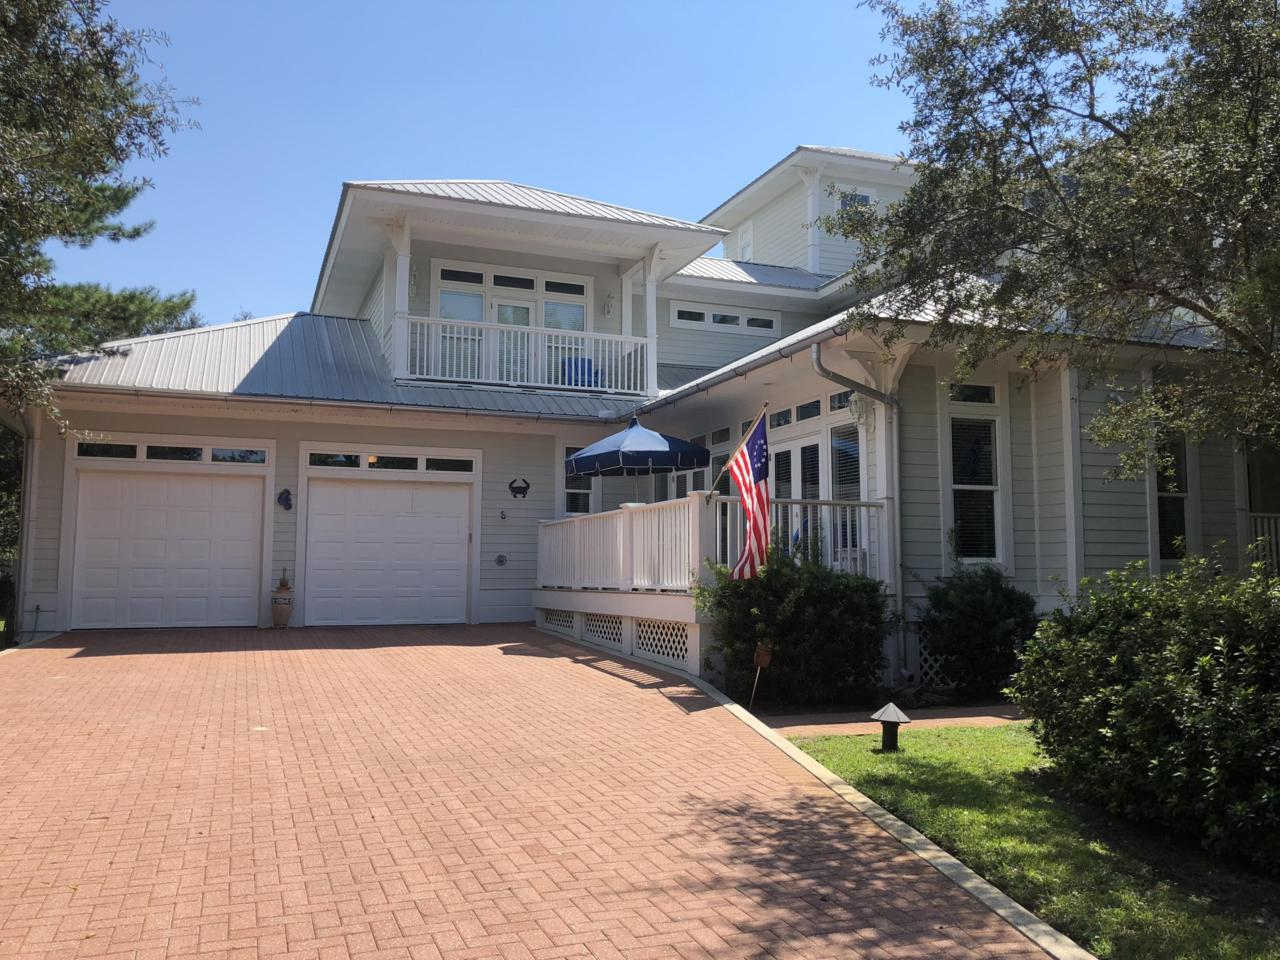 49 Seabreeze Circle - Photo 1